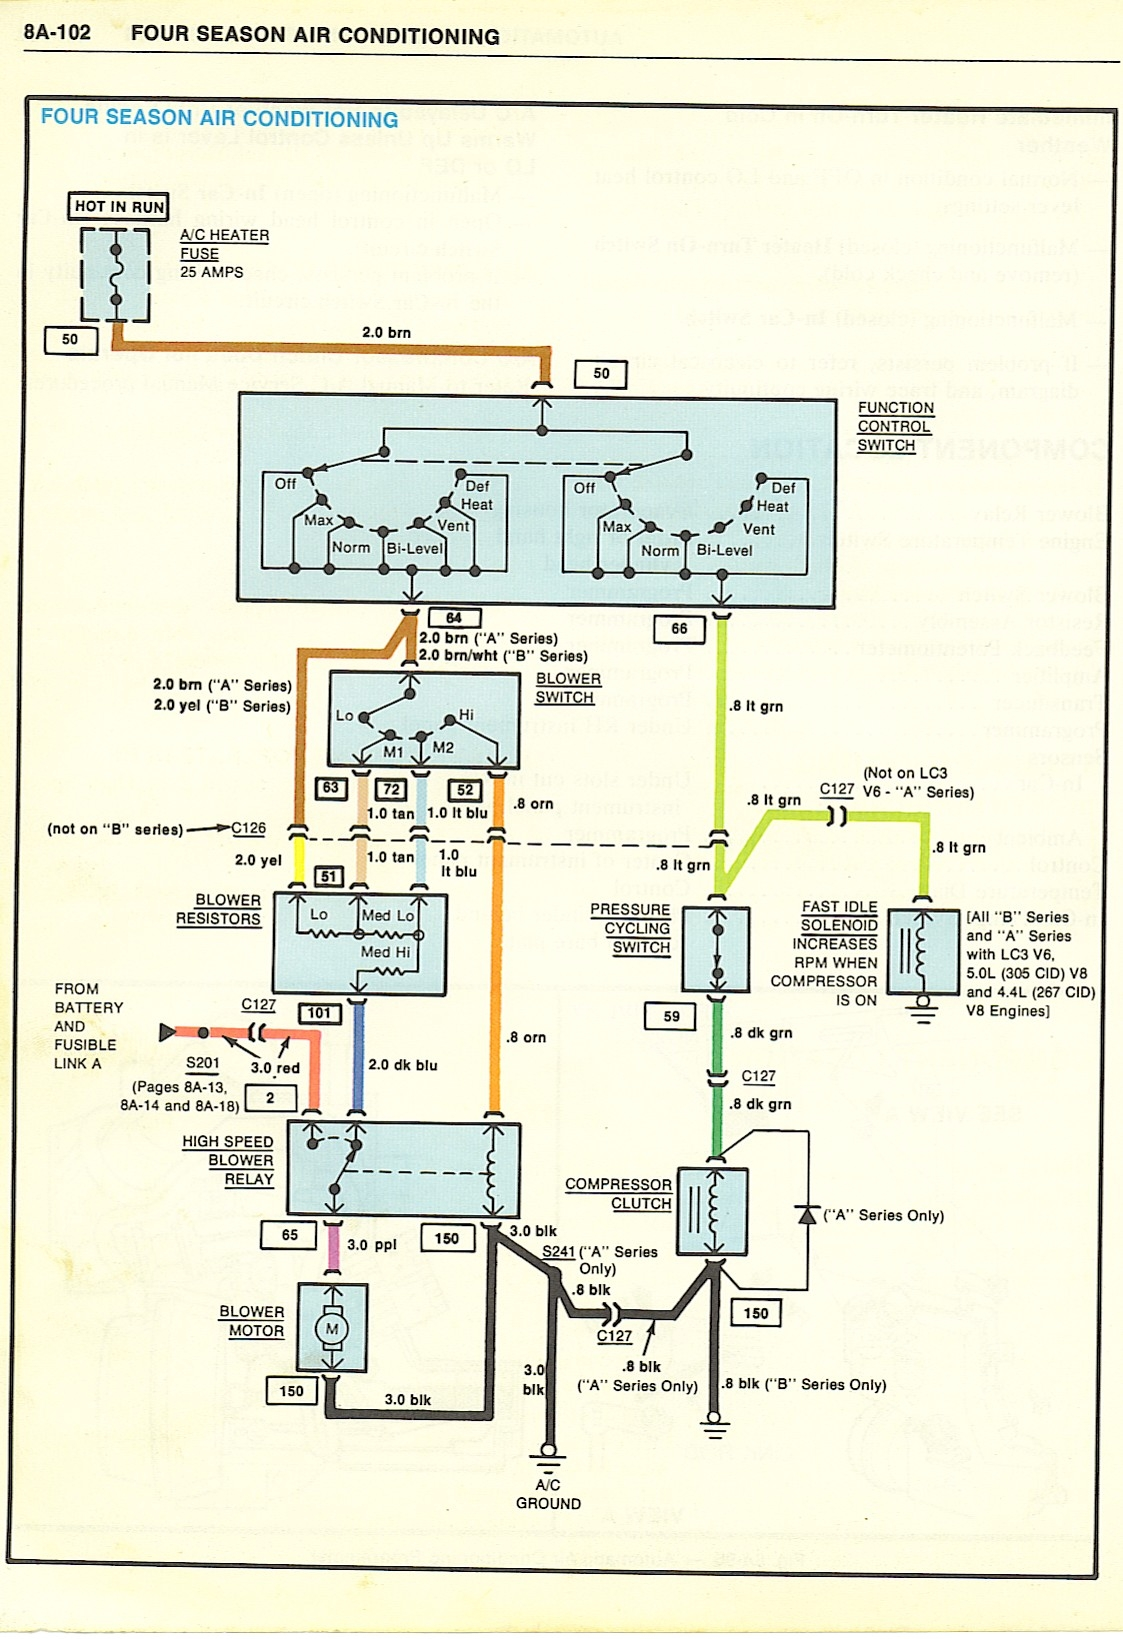 1968 FourSeasonAirConditioner chevy diagrams ac wiring diagram at fashall.co